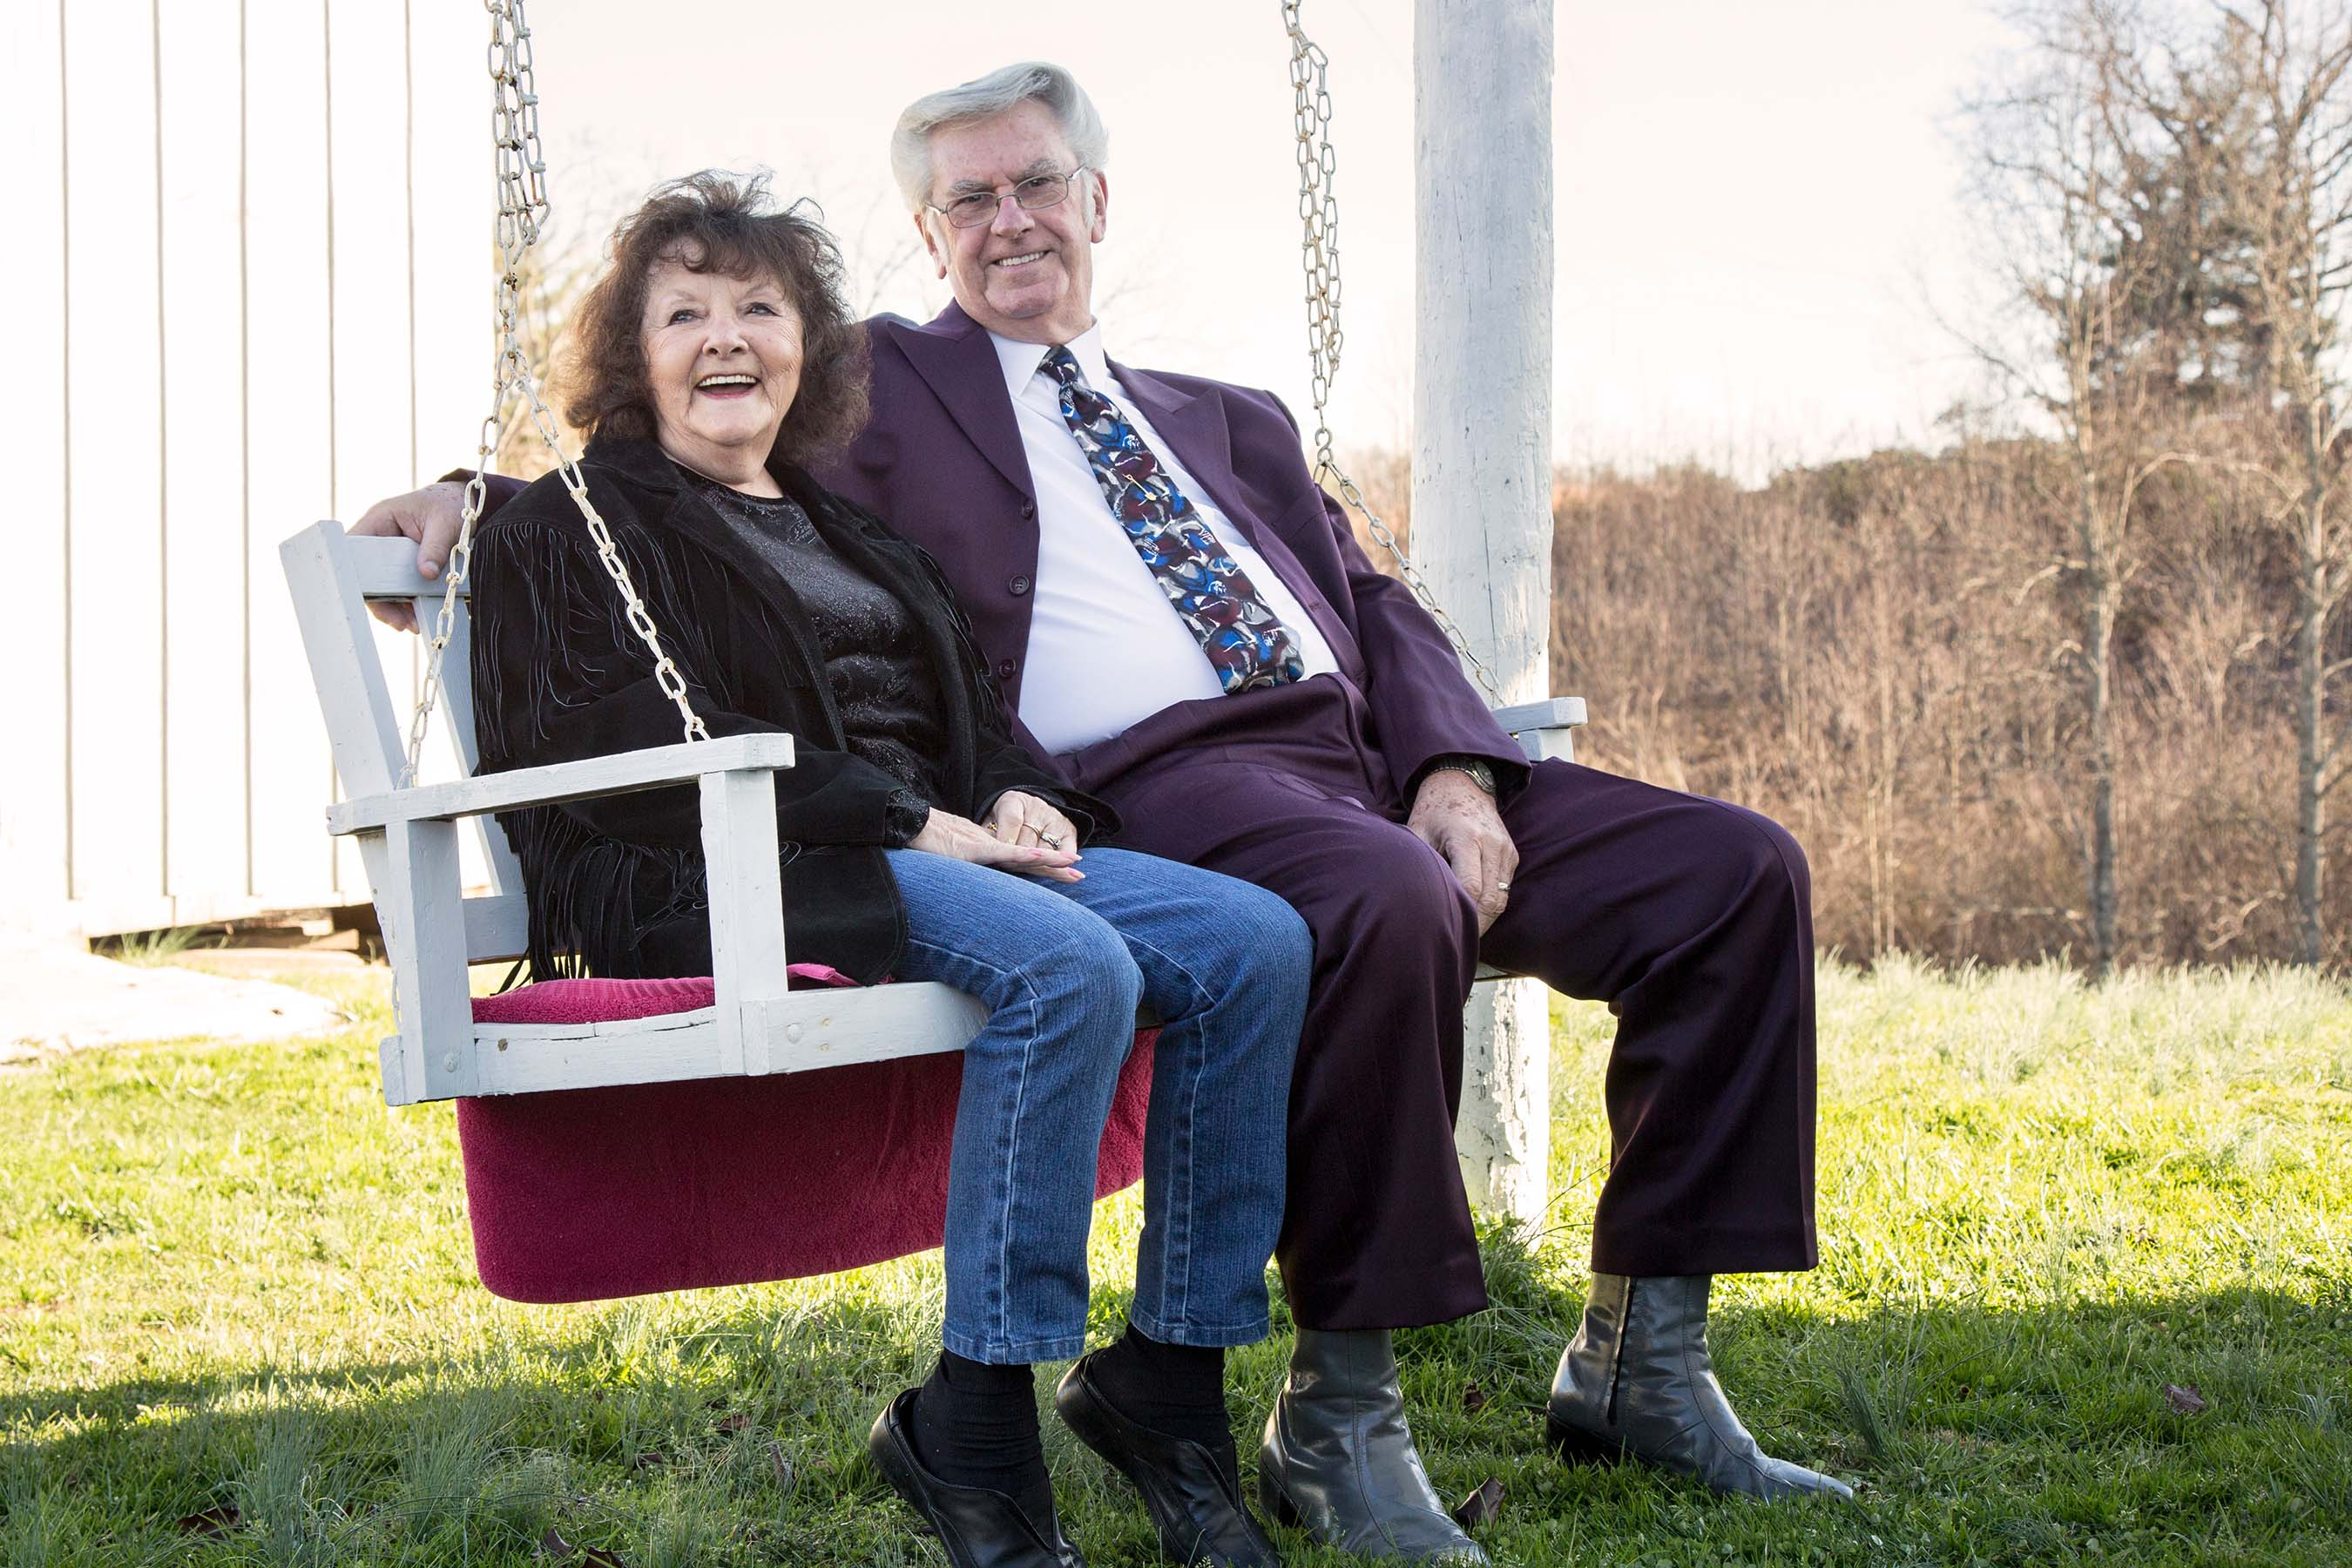 The Allens spend some time together on their outdoor swing.